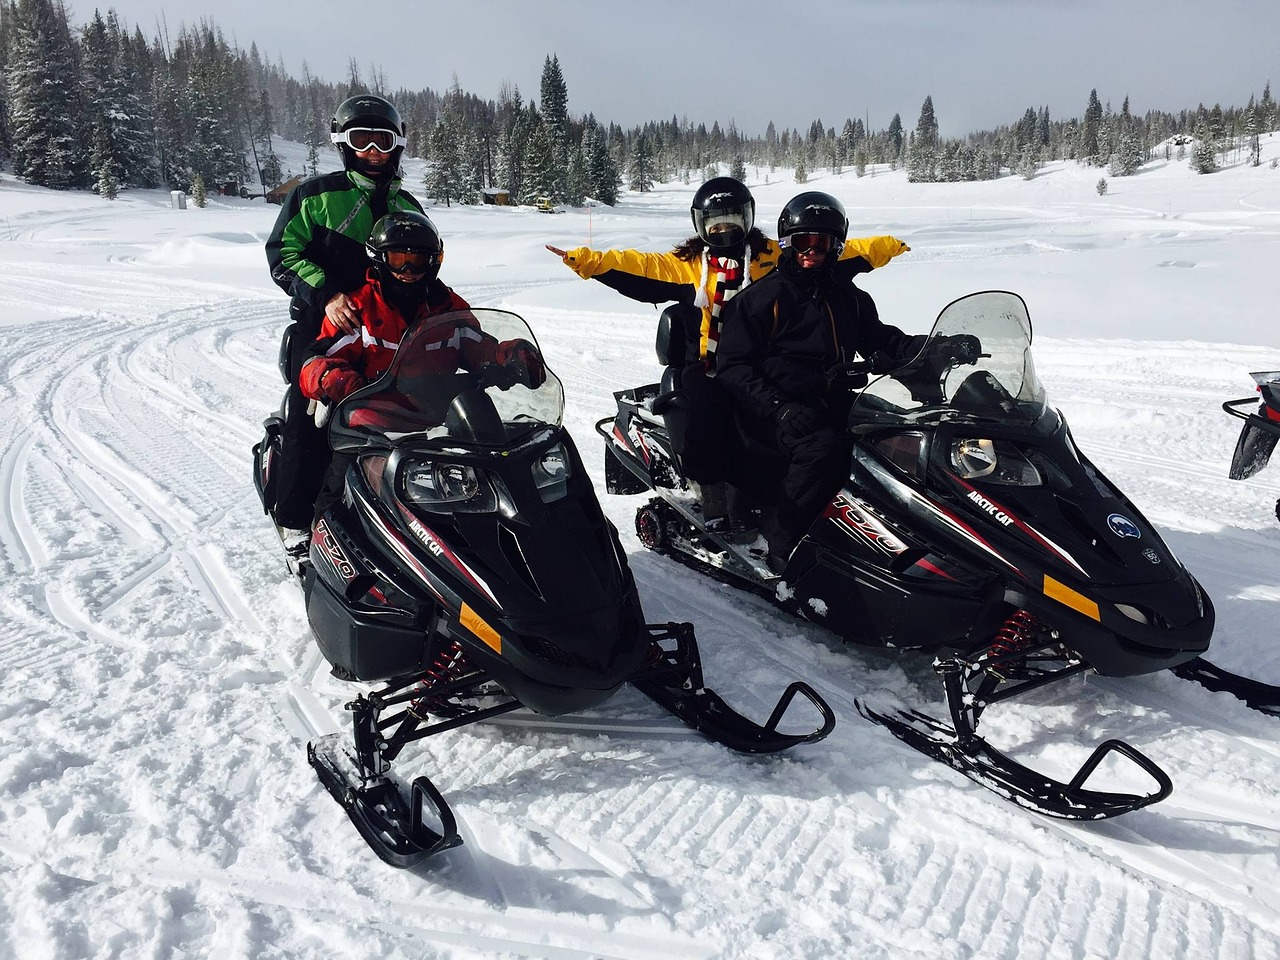 Snowmobile ride with kids